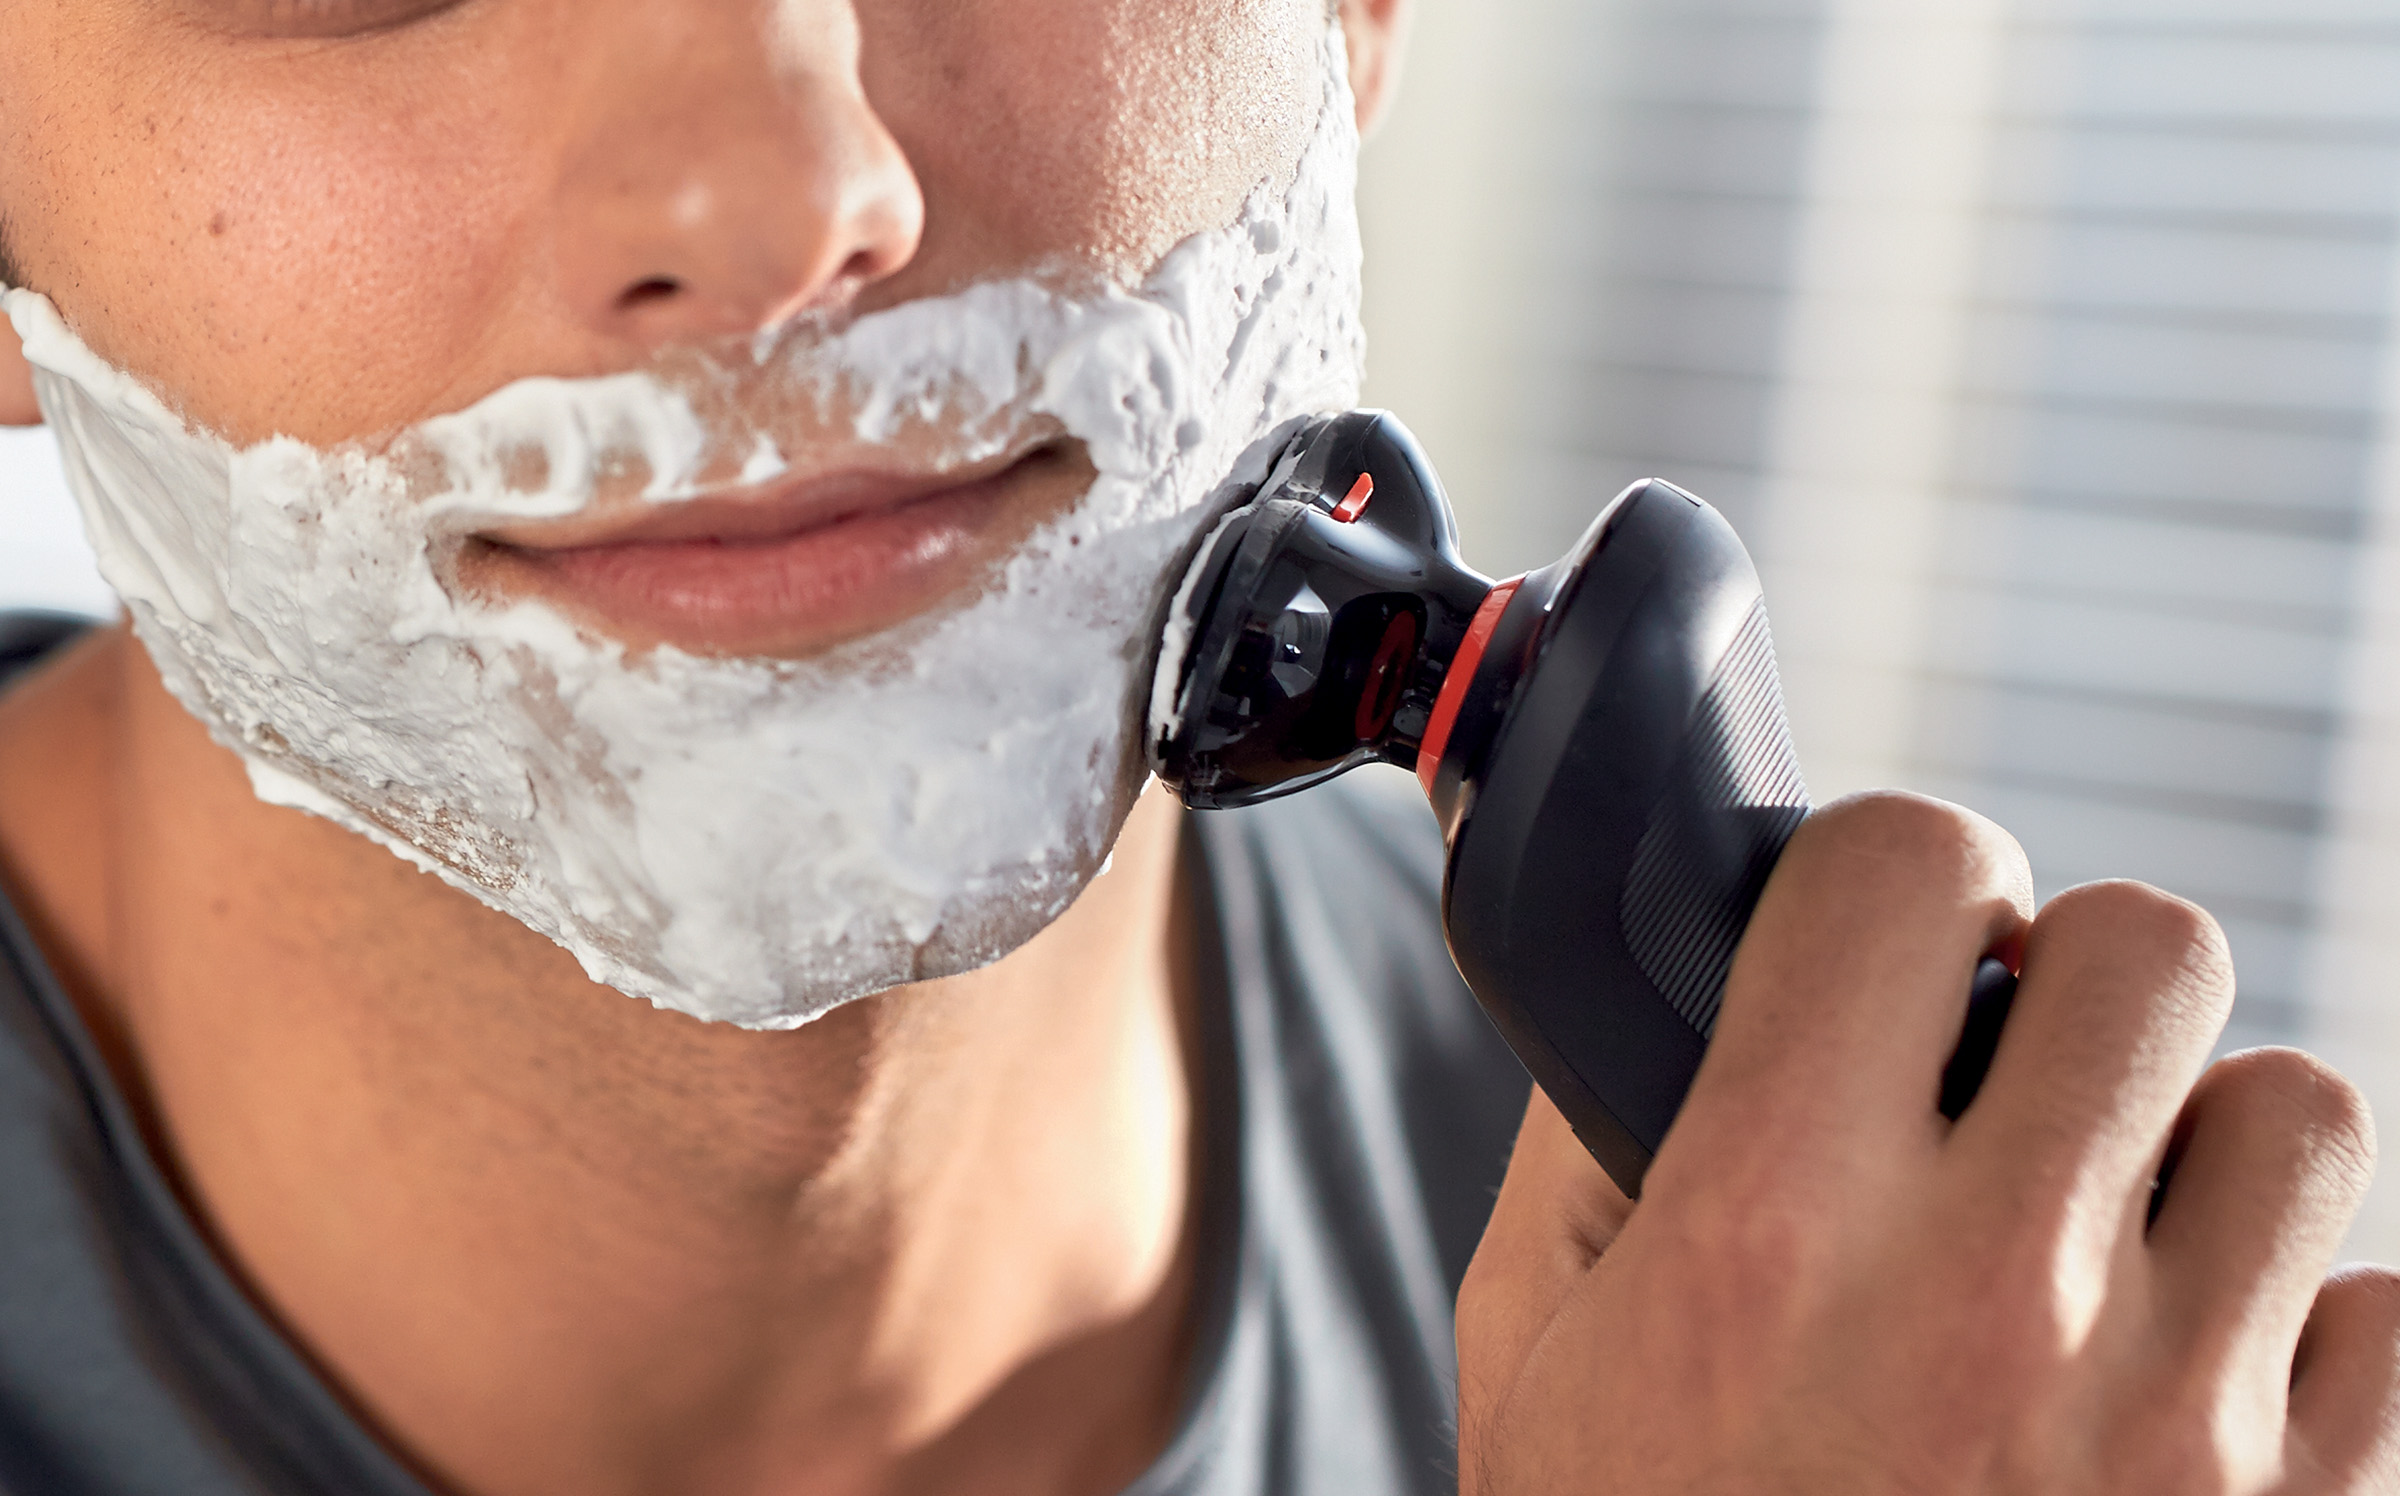 philips click and style mens electric shaver beard trimmer cordless s720 17 ebay. Black Bedroom Furniture Sets. Home Design Ideas